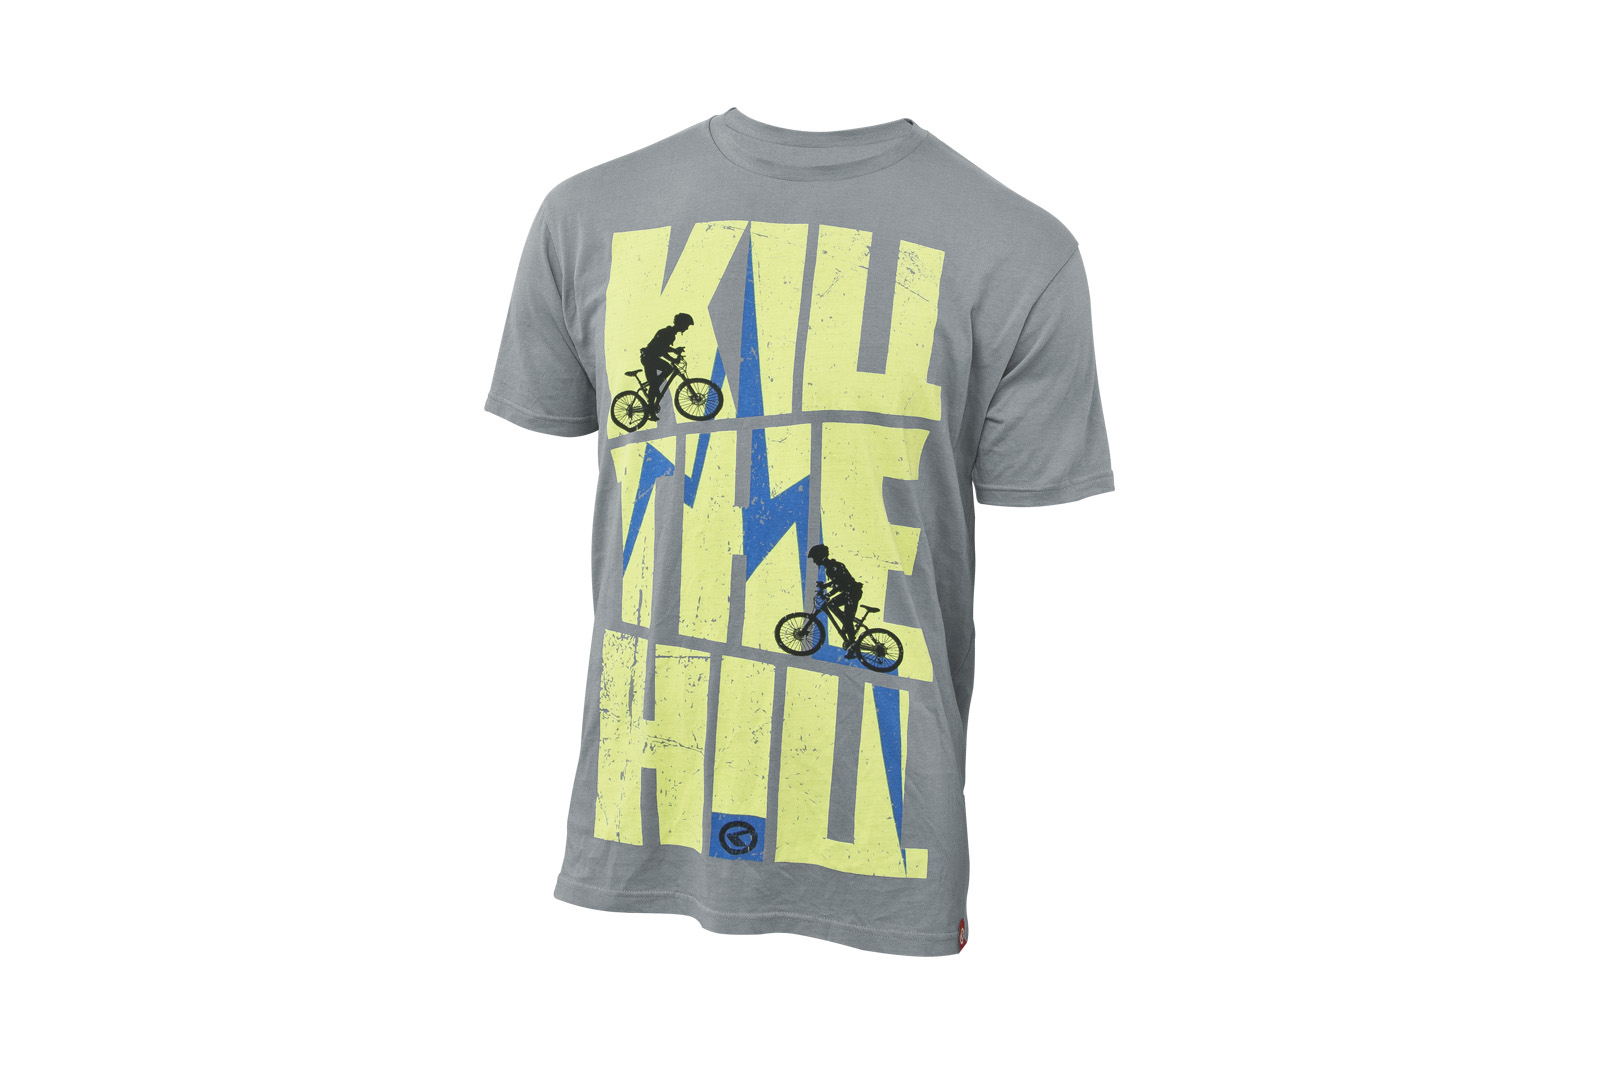 T-Shirt KELLYS KILL THE HILL kurzarm Grey - L - Fahrradhaus Haske